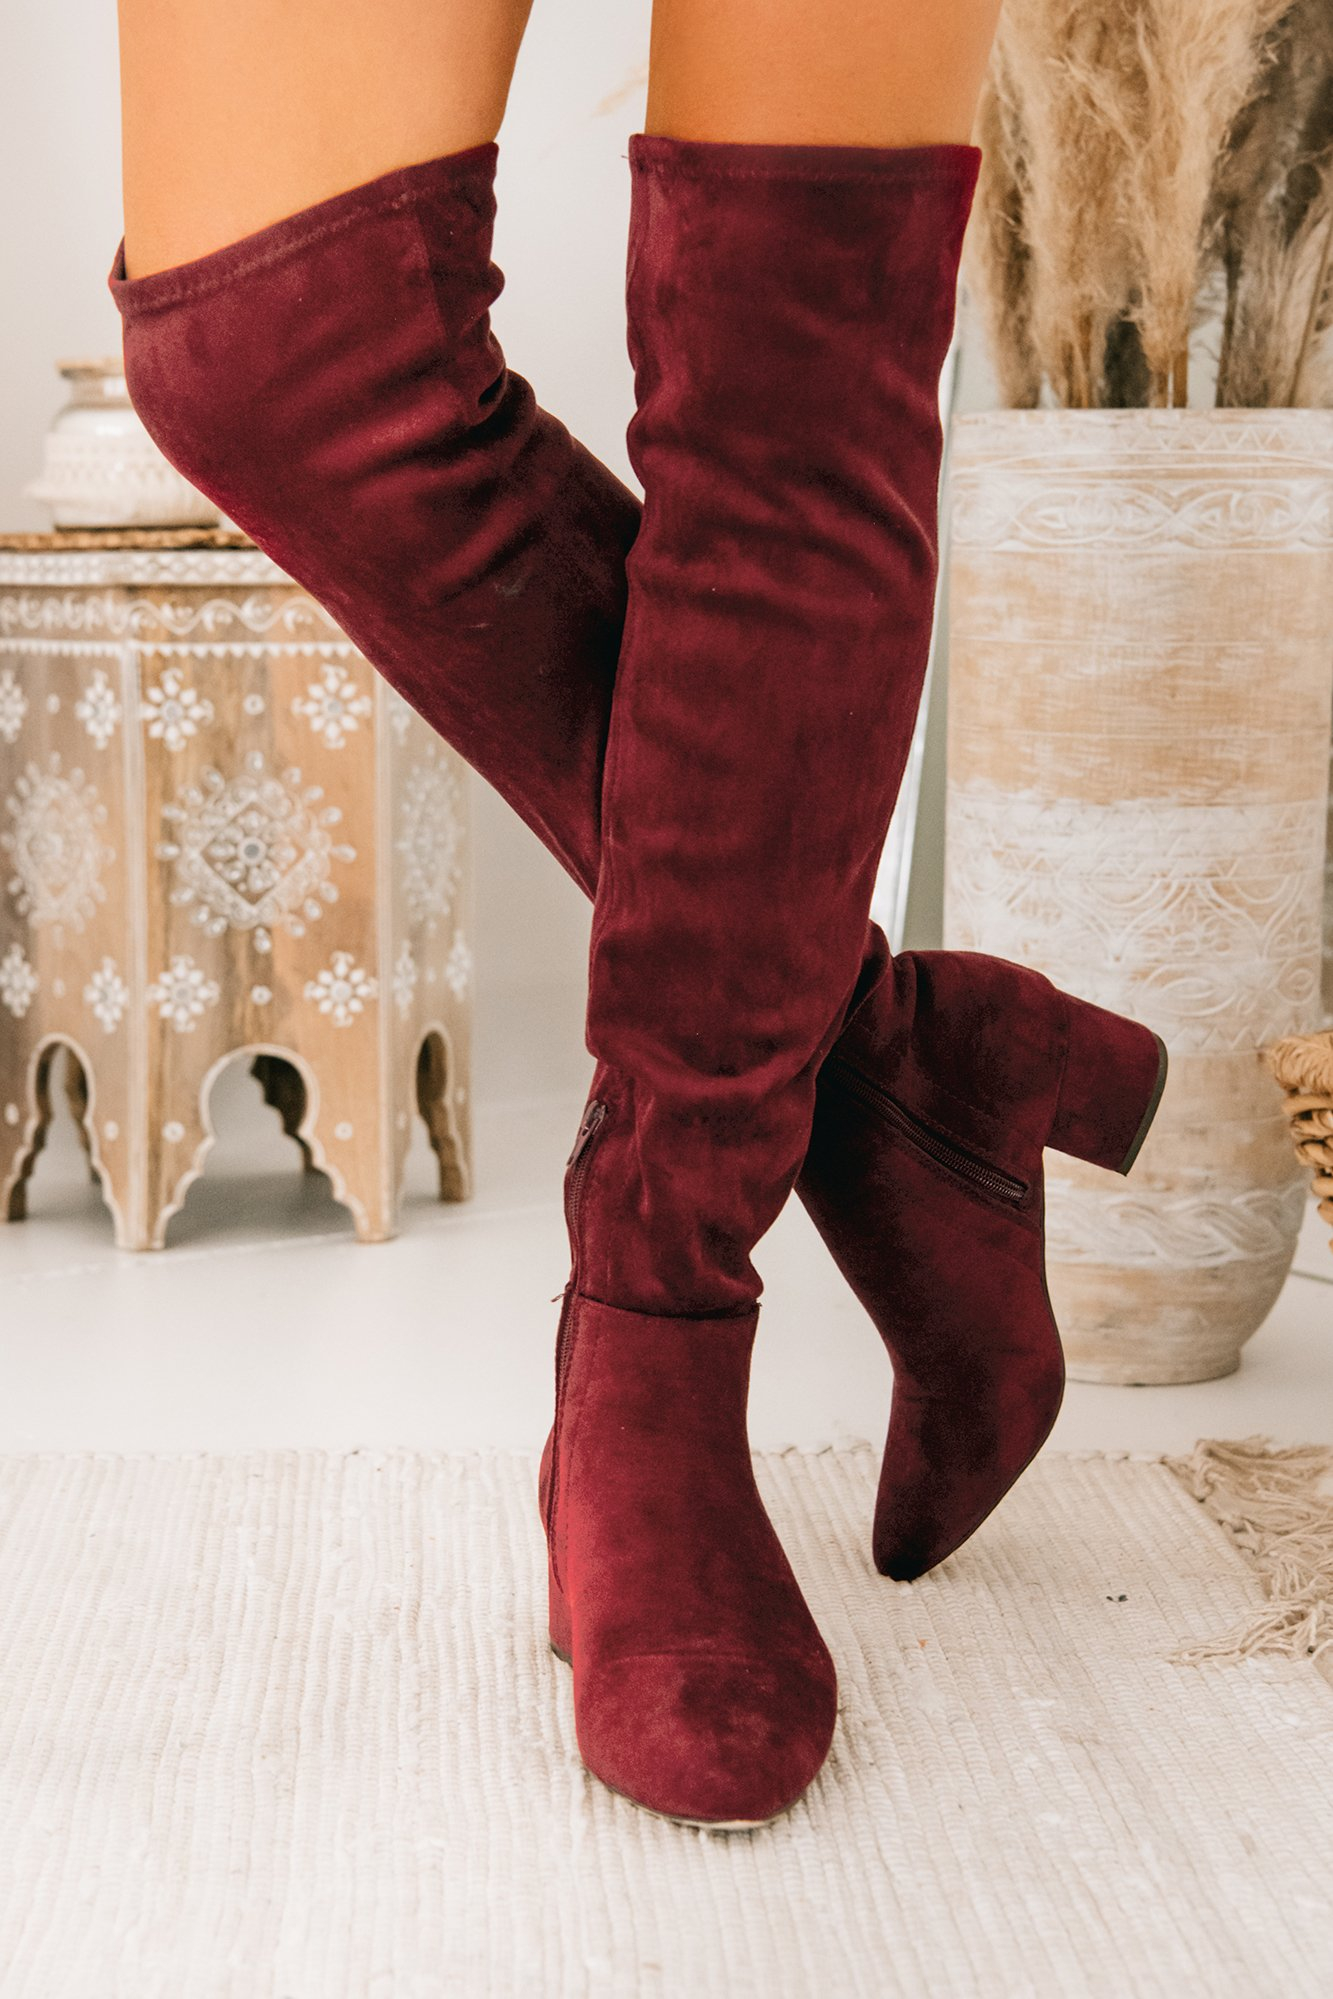 Image of Missed Your Chance Thigh High Boots (Burgundy)